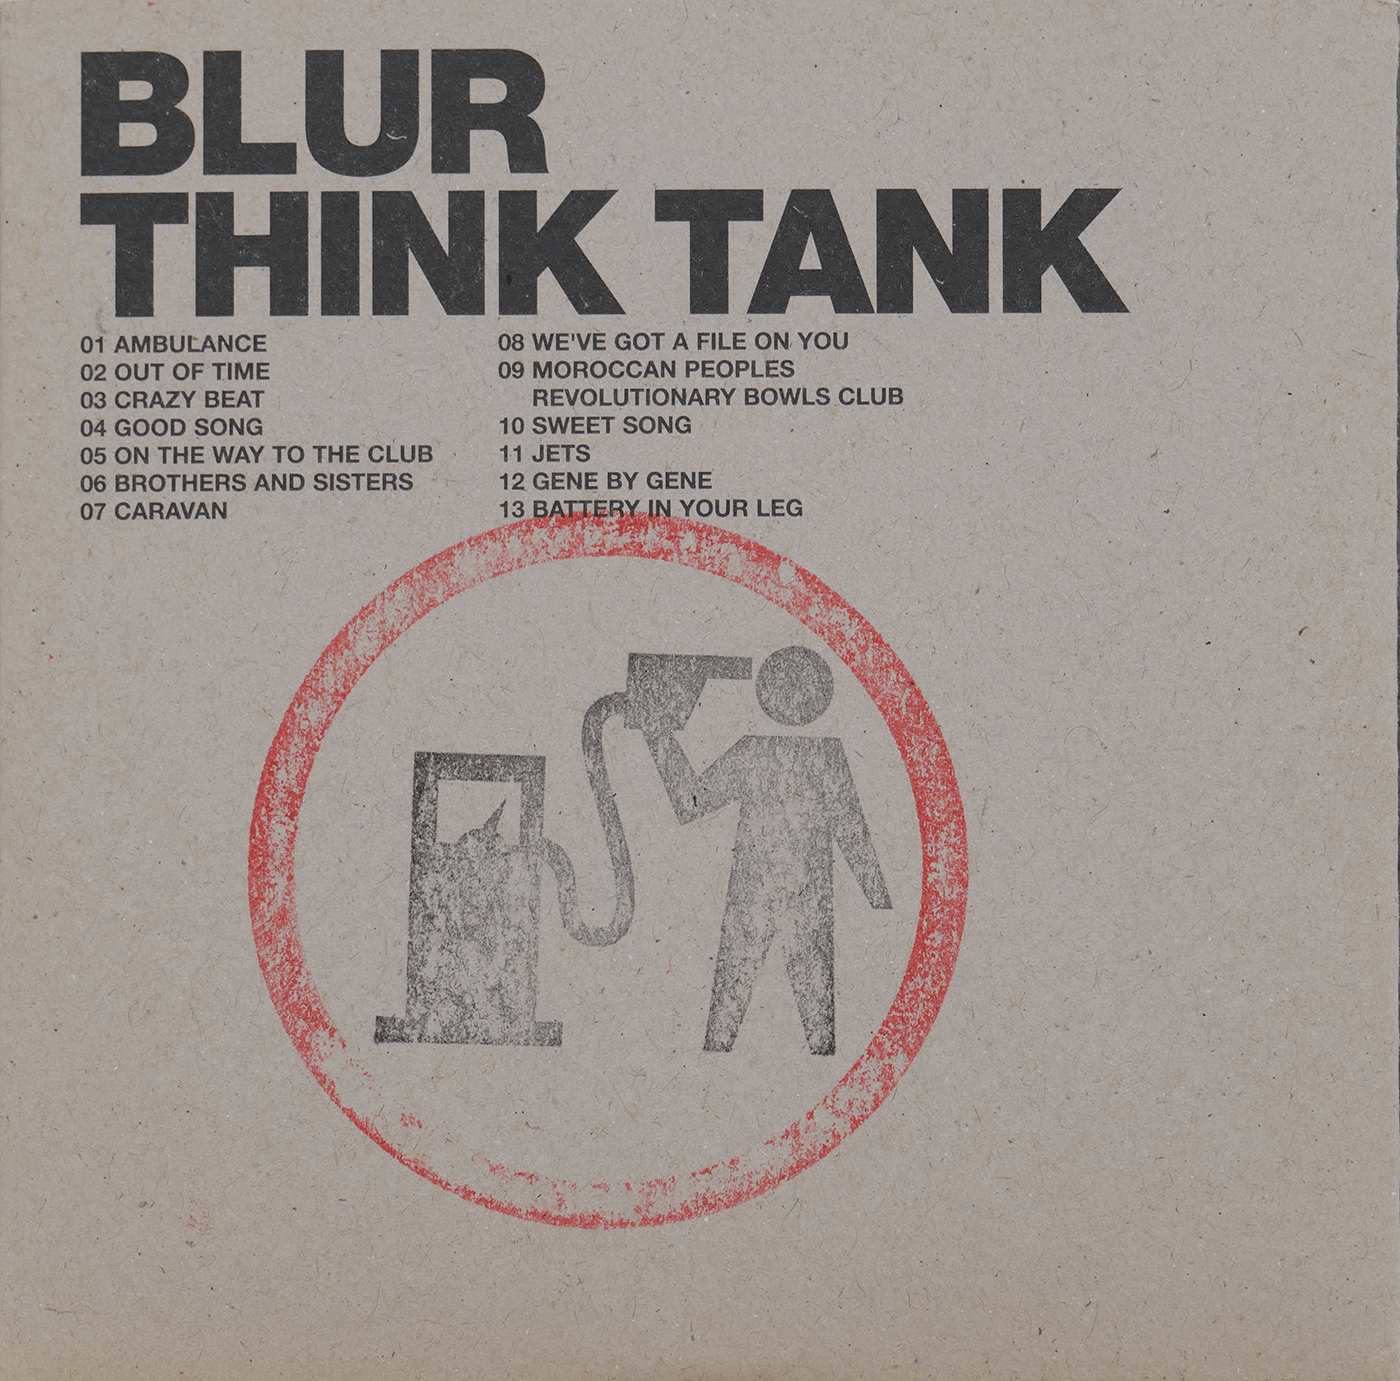 Blur – Think Tank CD